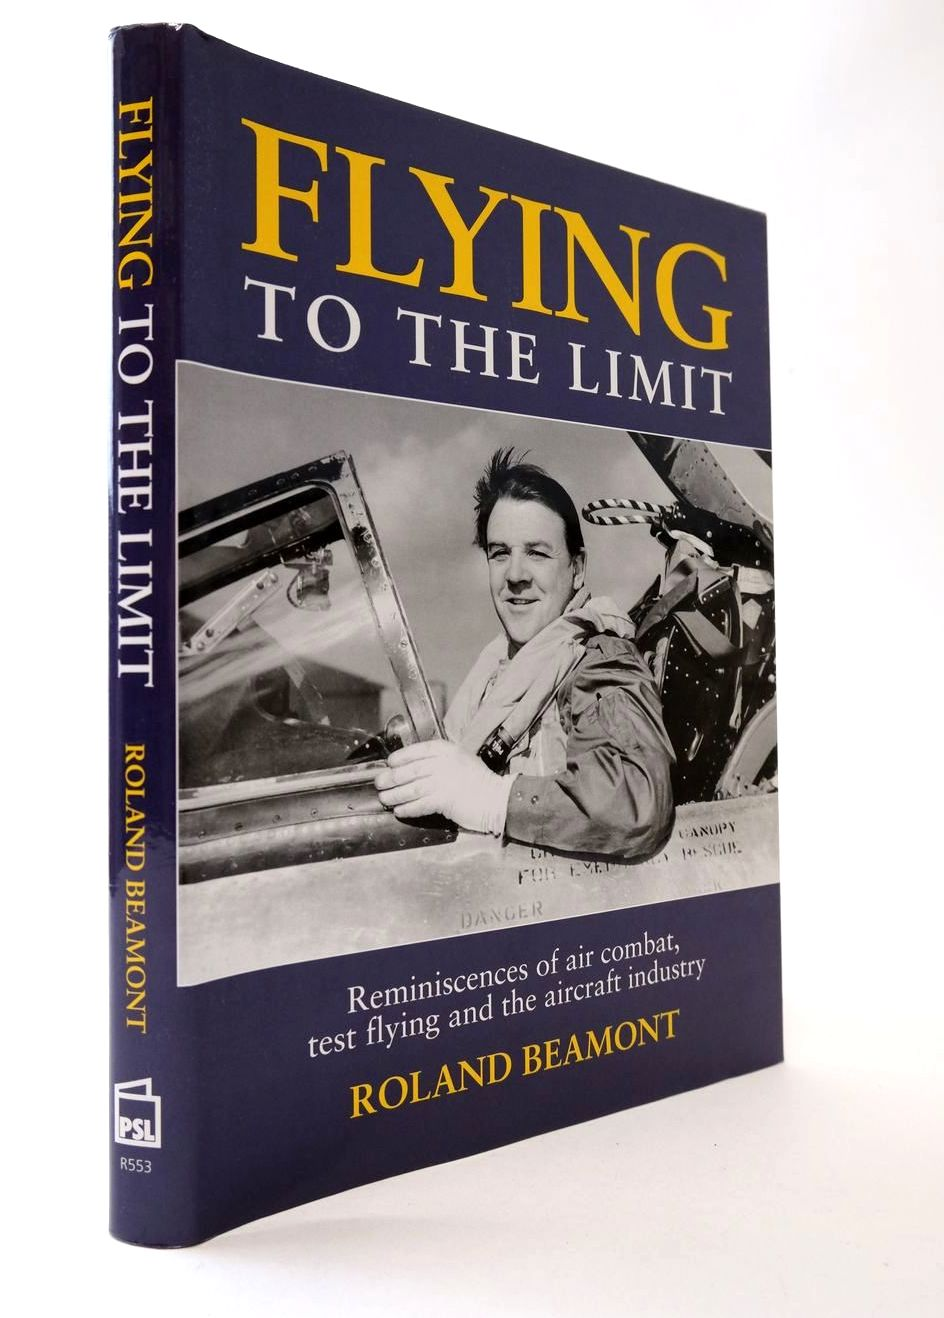 Photo of FLYING TO THE LIMIT written by Beamont, Roland published by Patrick Stephens Limited (STOCK CODE: 2132354)  for sale by Stella & Rose's Books